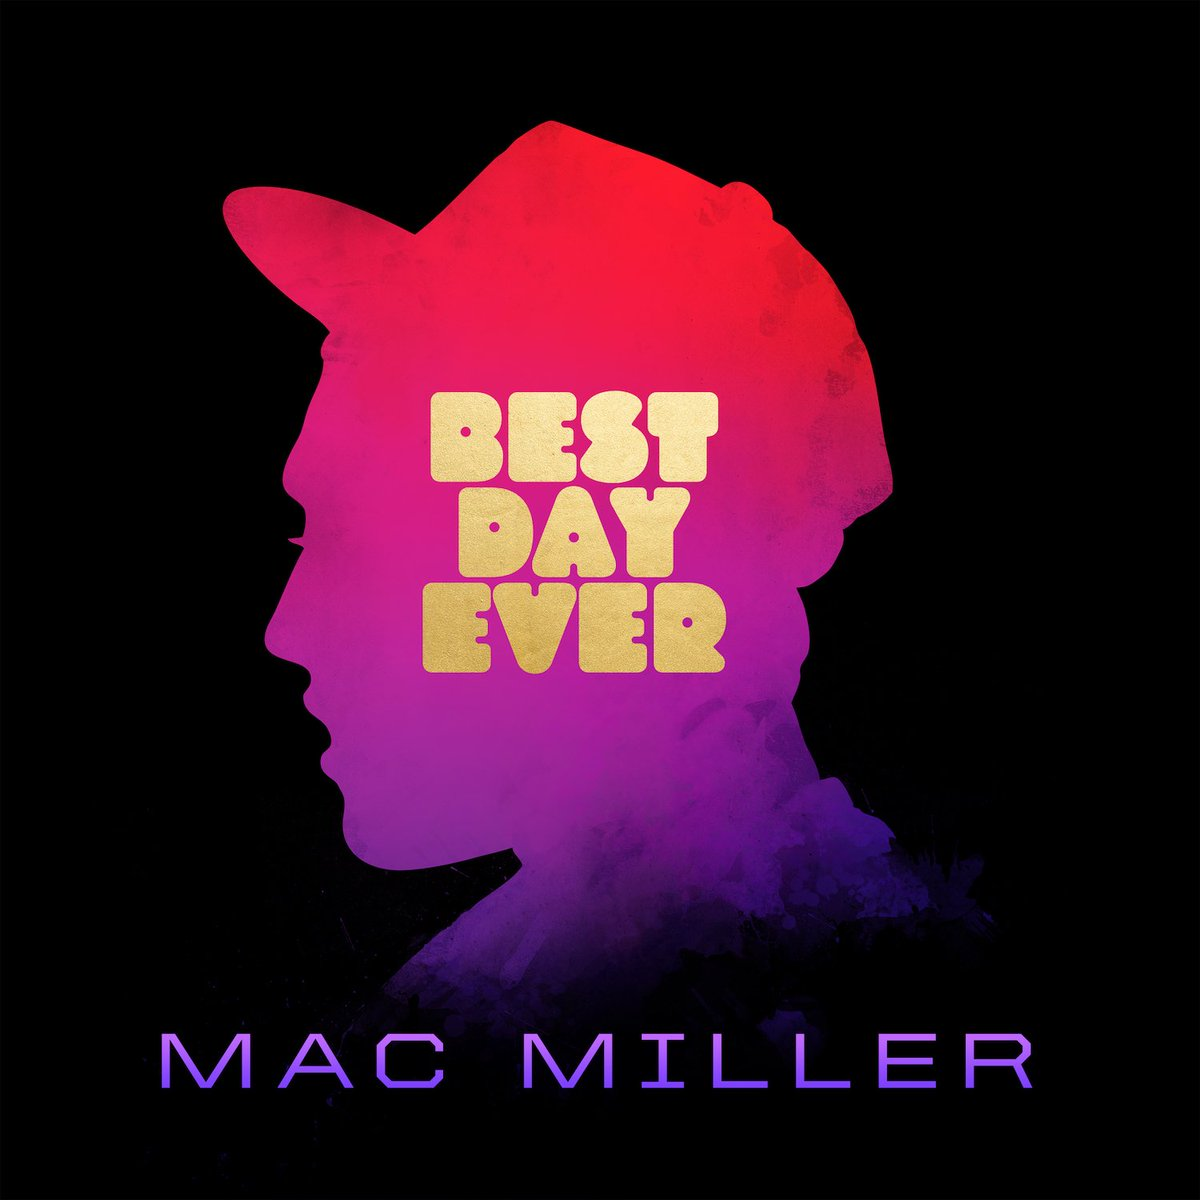 .@MacMiller's #BestDayEver 5th anniversary remastered album is out now! https://t.co/AIraIfVoGw https://t.co/oHAndR3c33